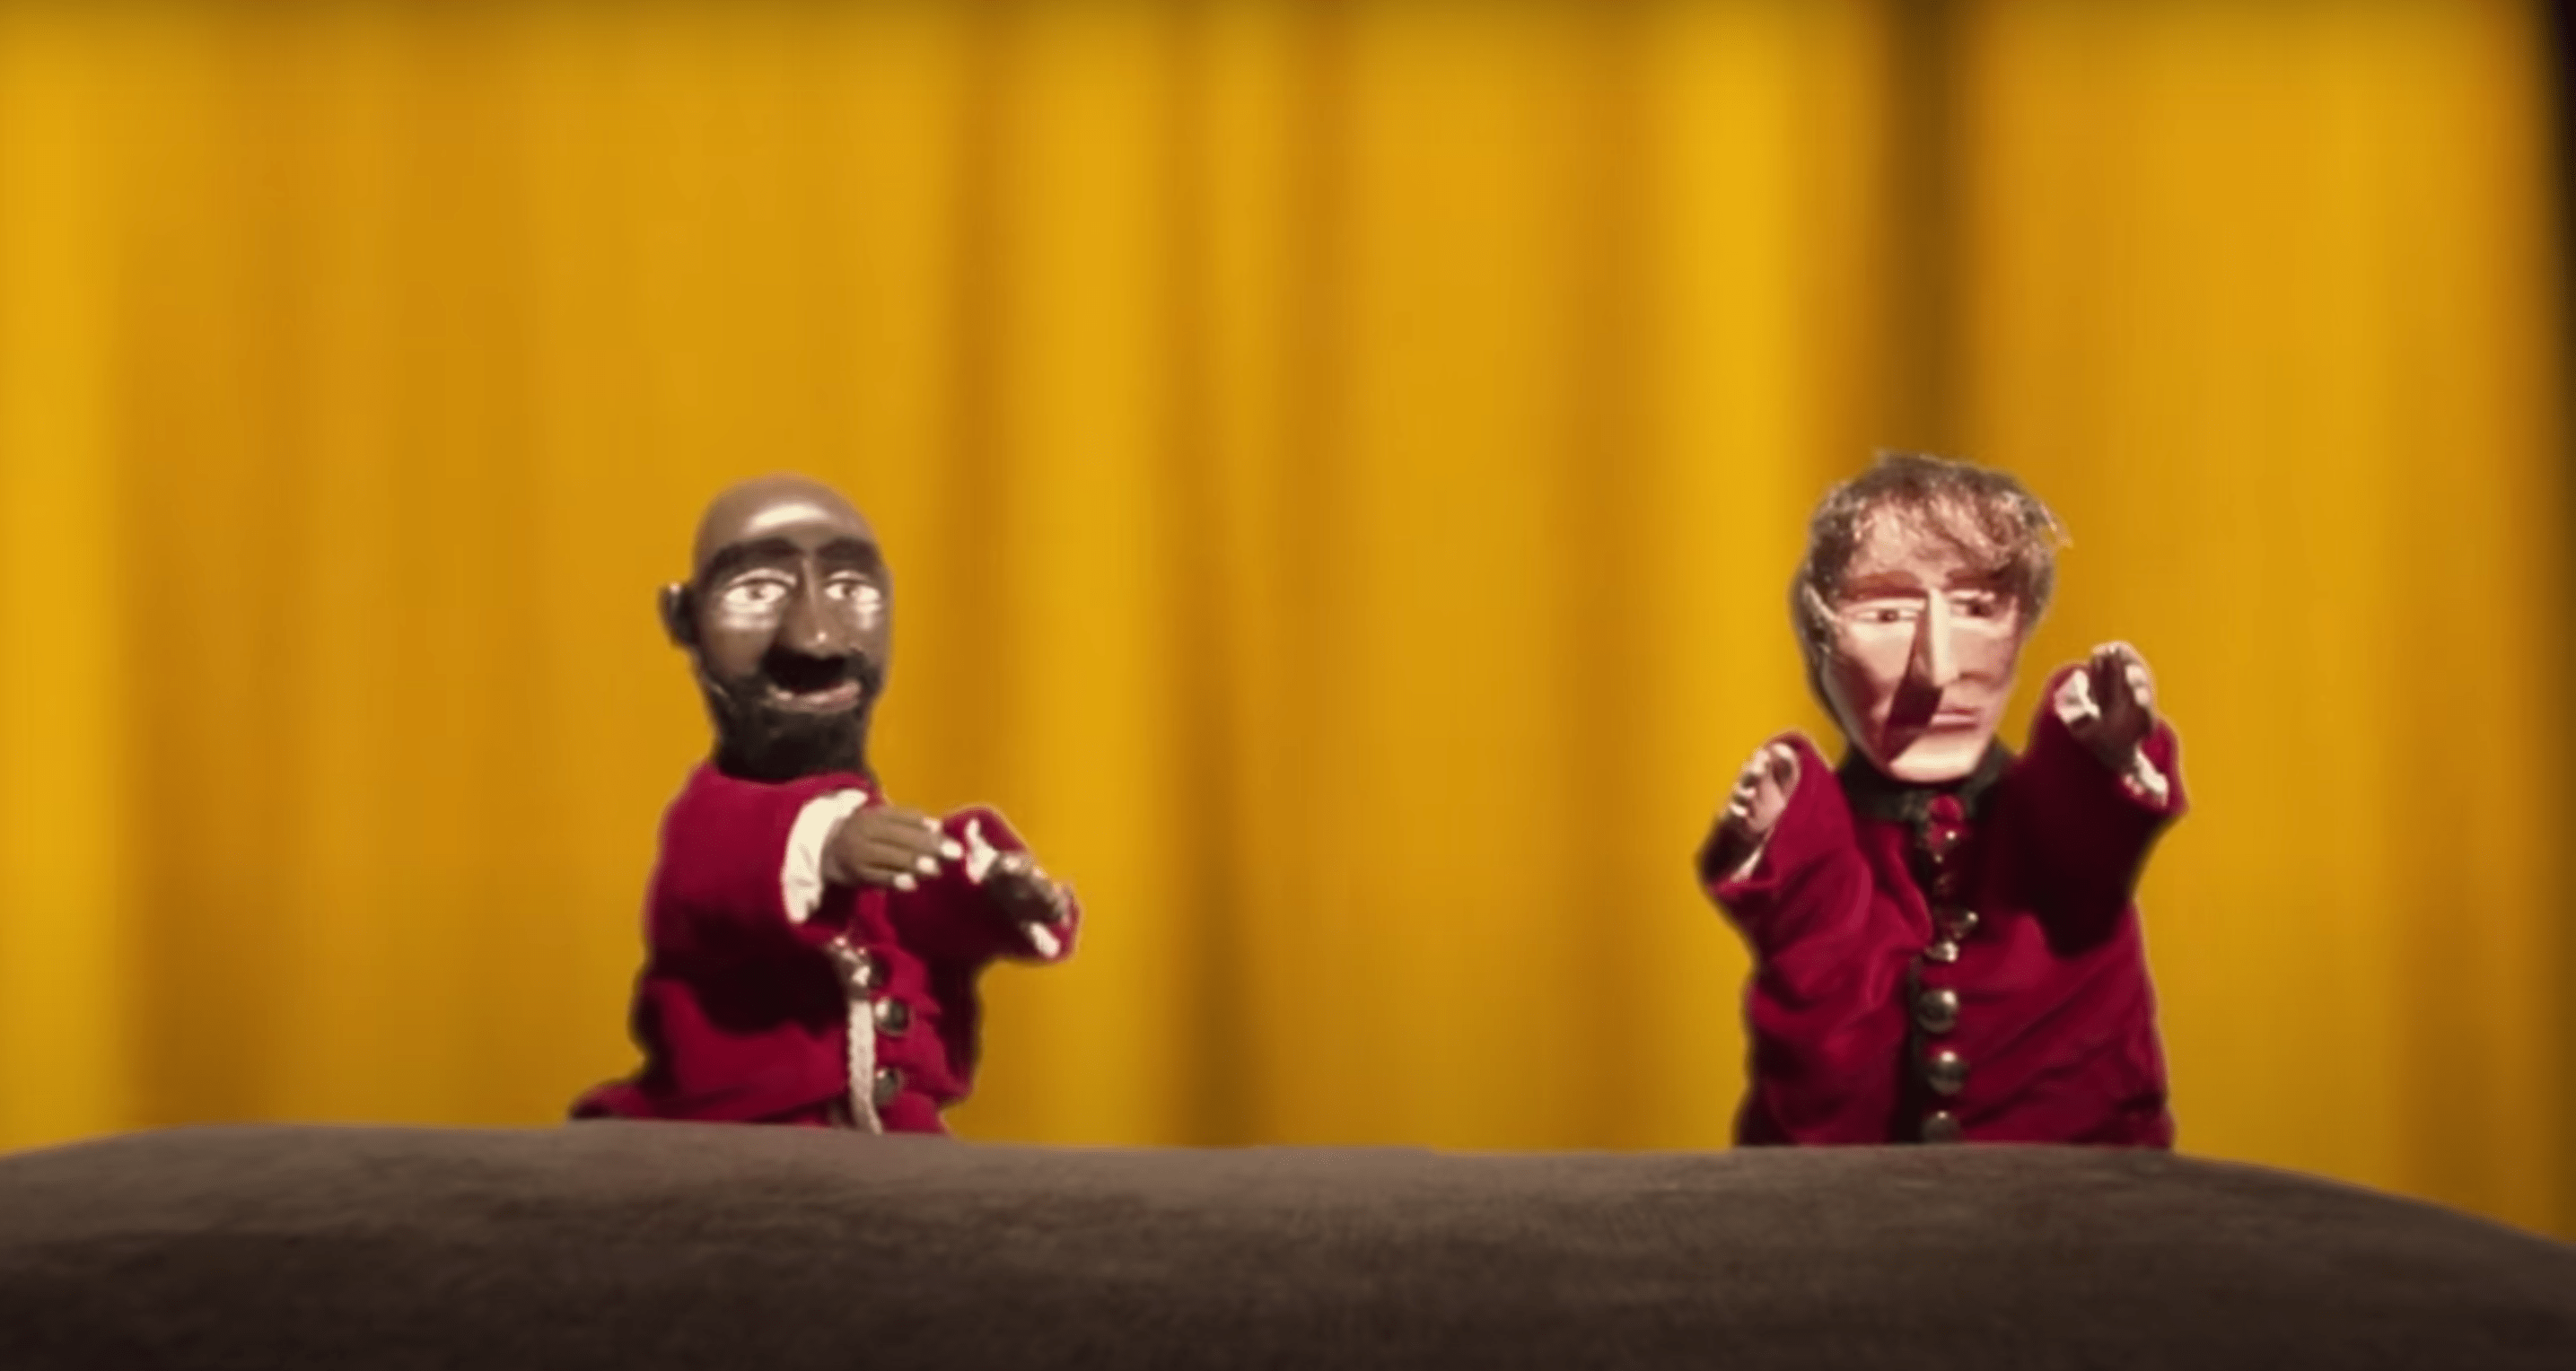 Level quarantine entertainment: The Libertines premiere a web show with puppets